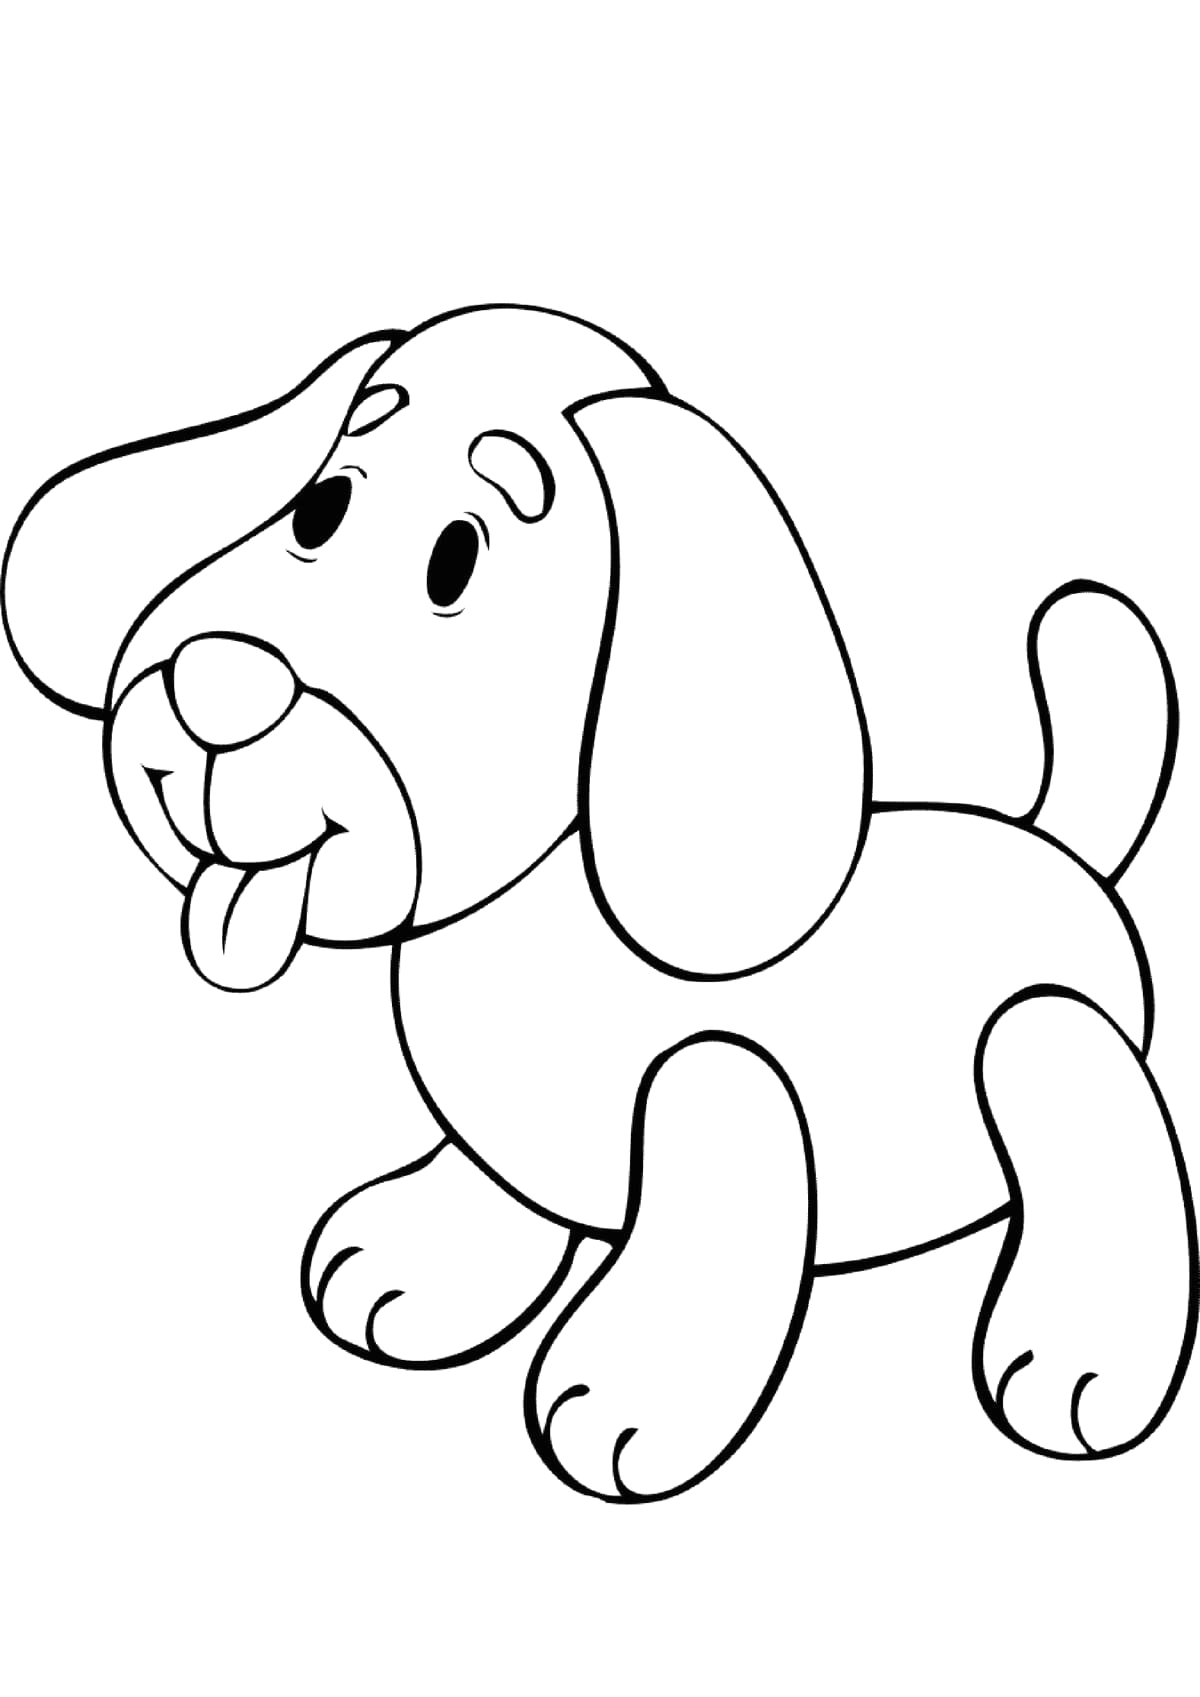 Coloring Pages for 2 3 Year Olds Coloring Pages for 2 to 3 Year Old Kids Download them or